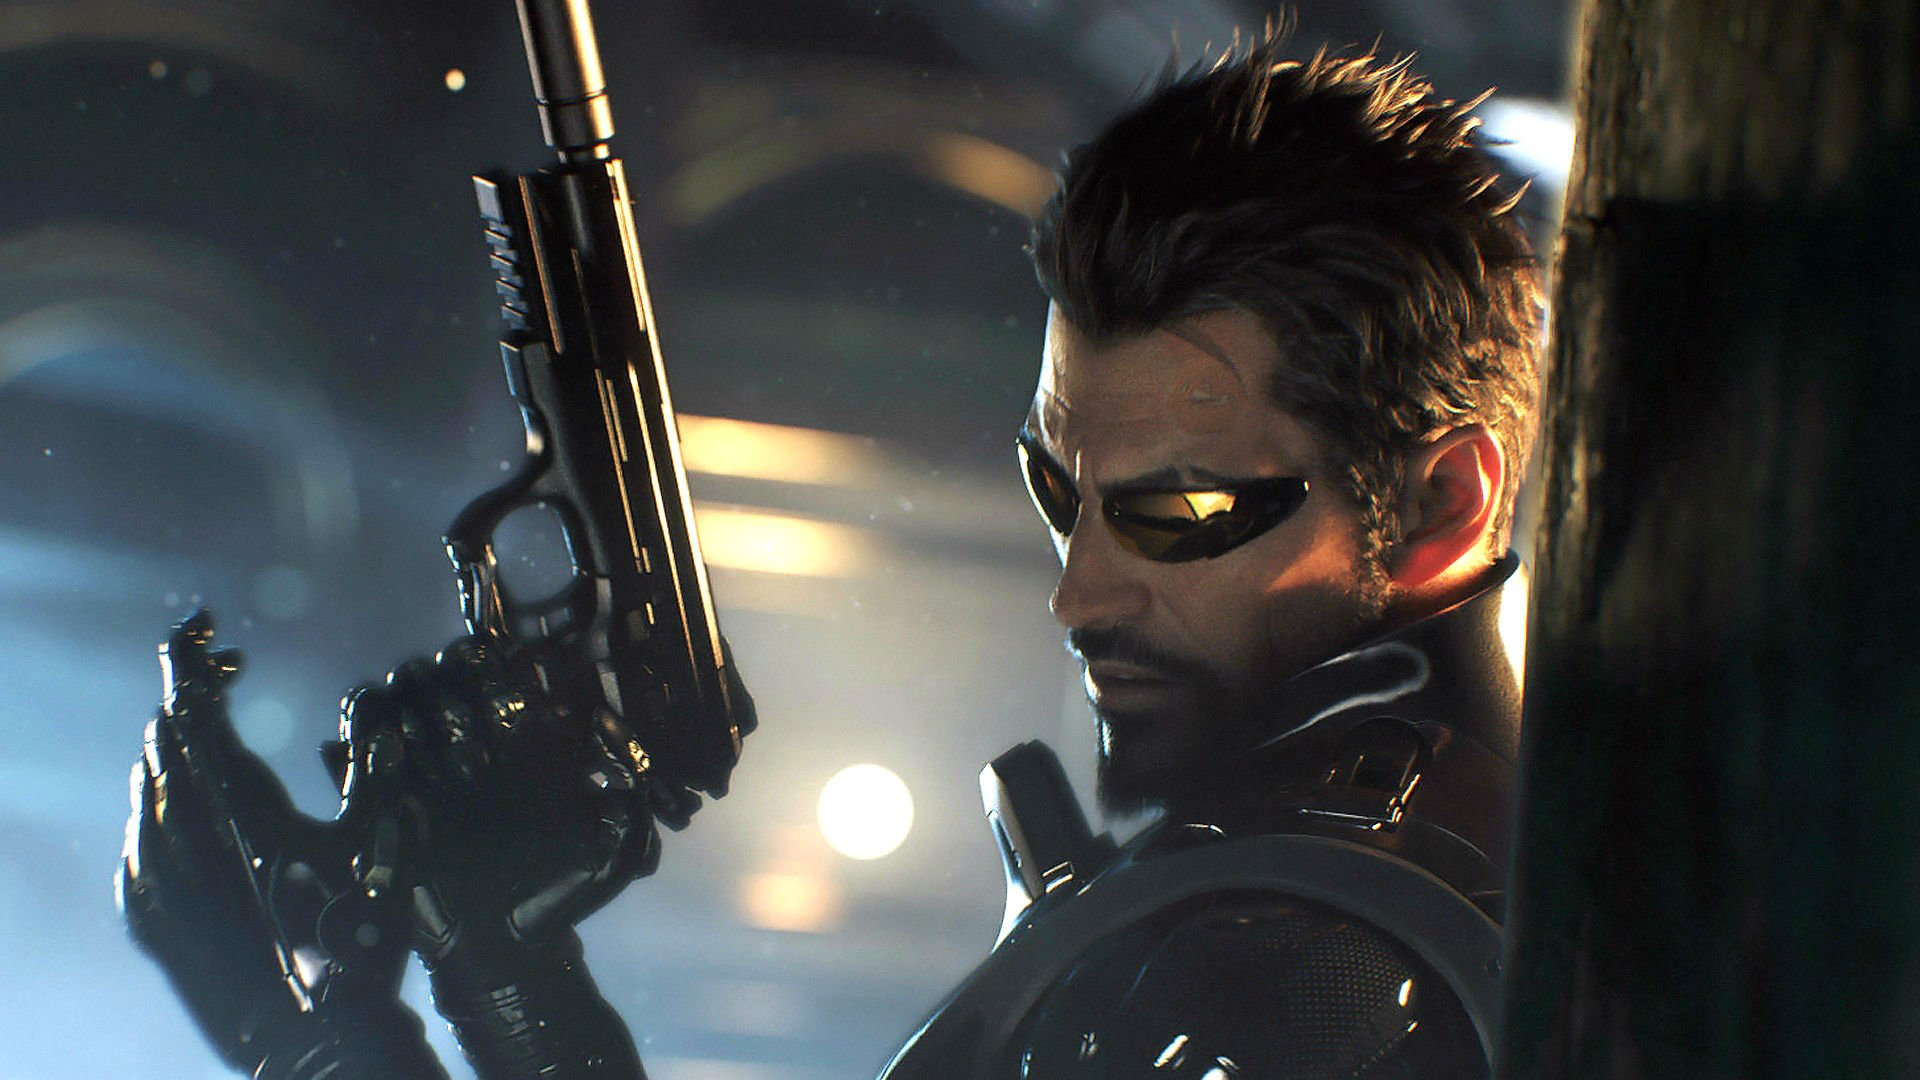 Deus Ex Mankind Divided HQ wallpapers